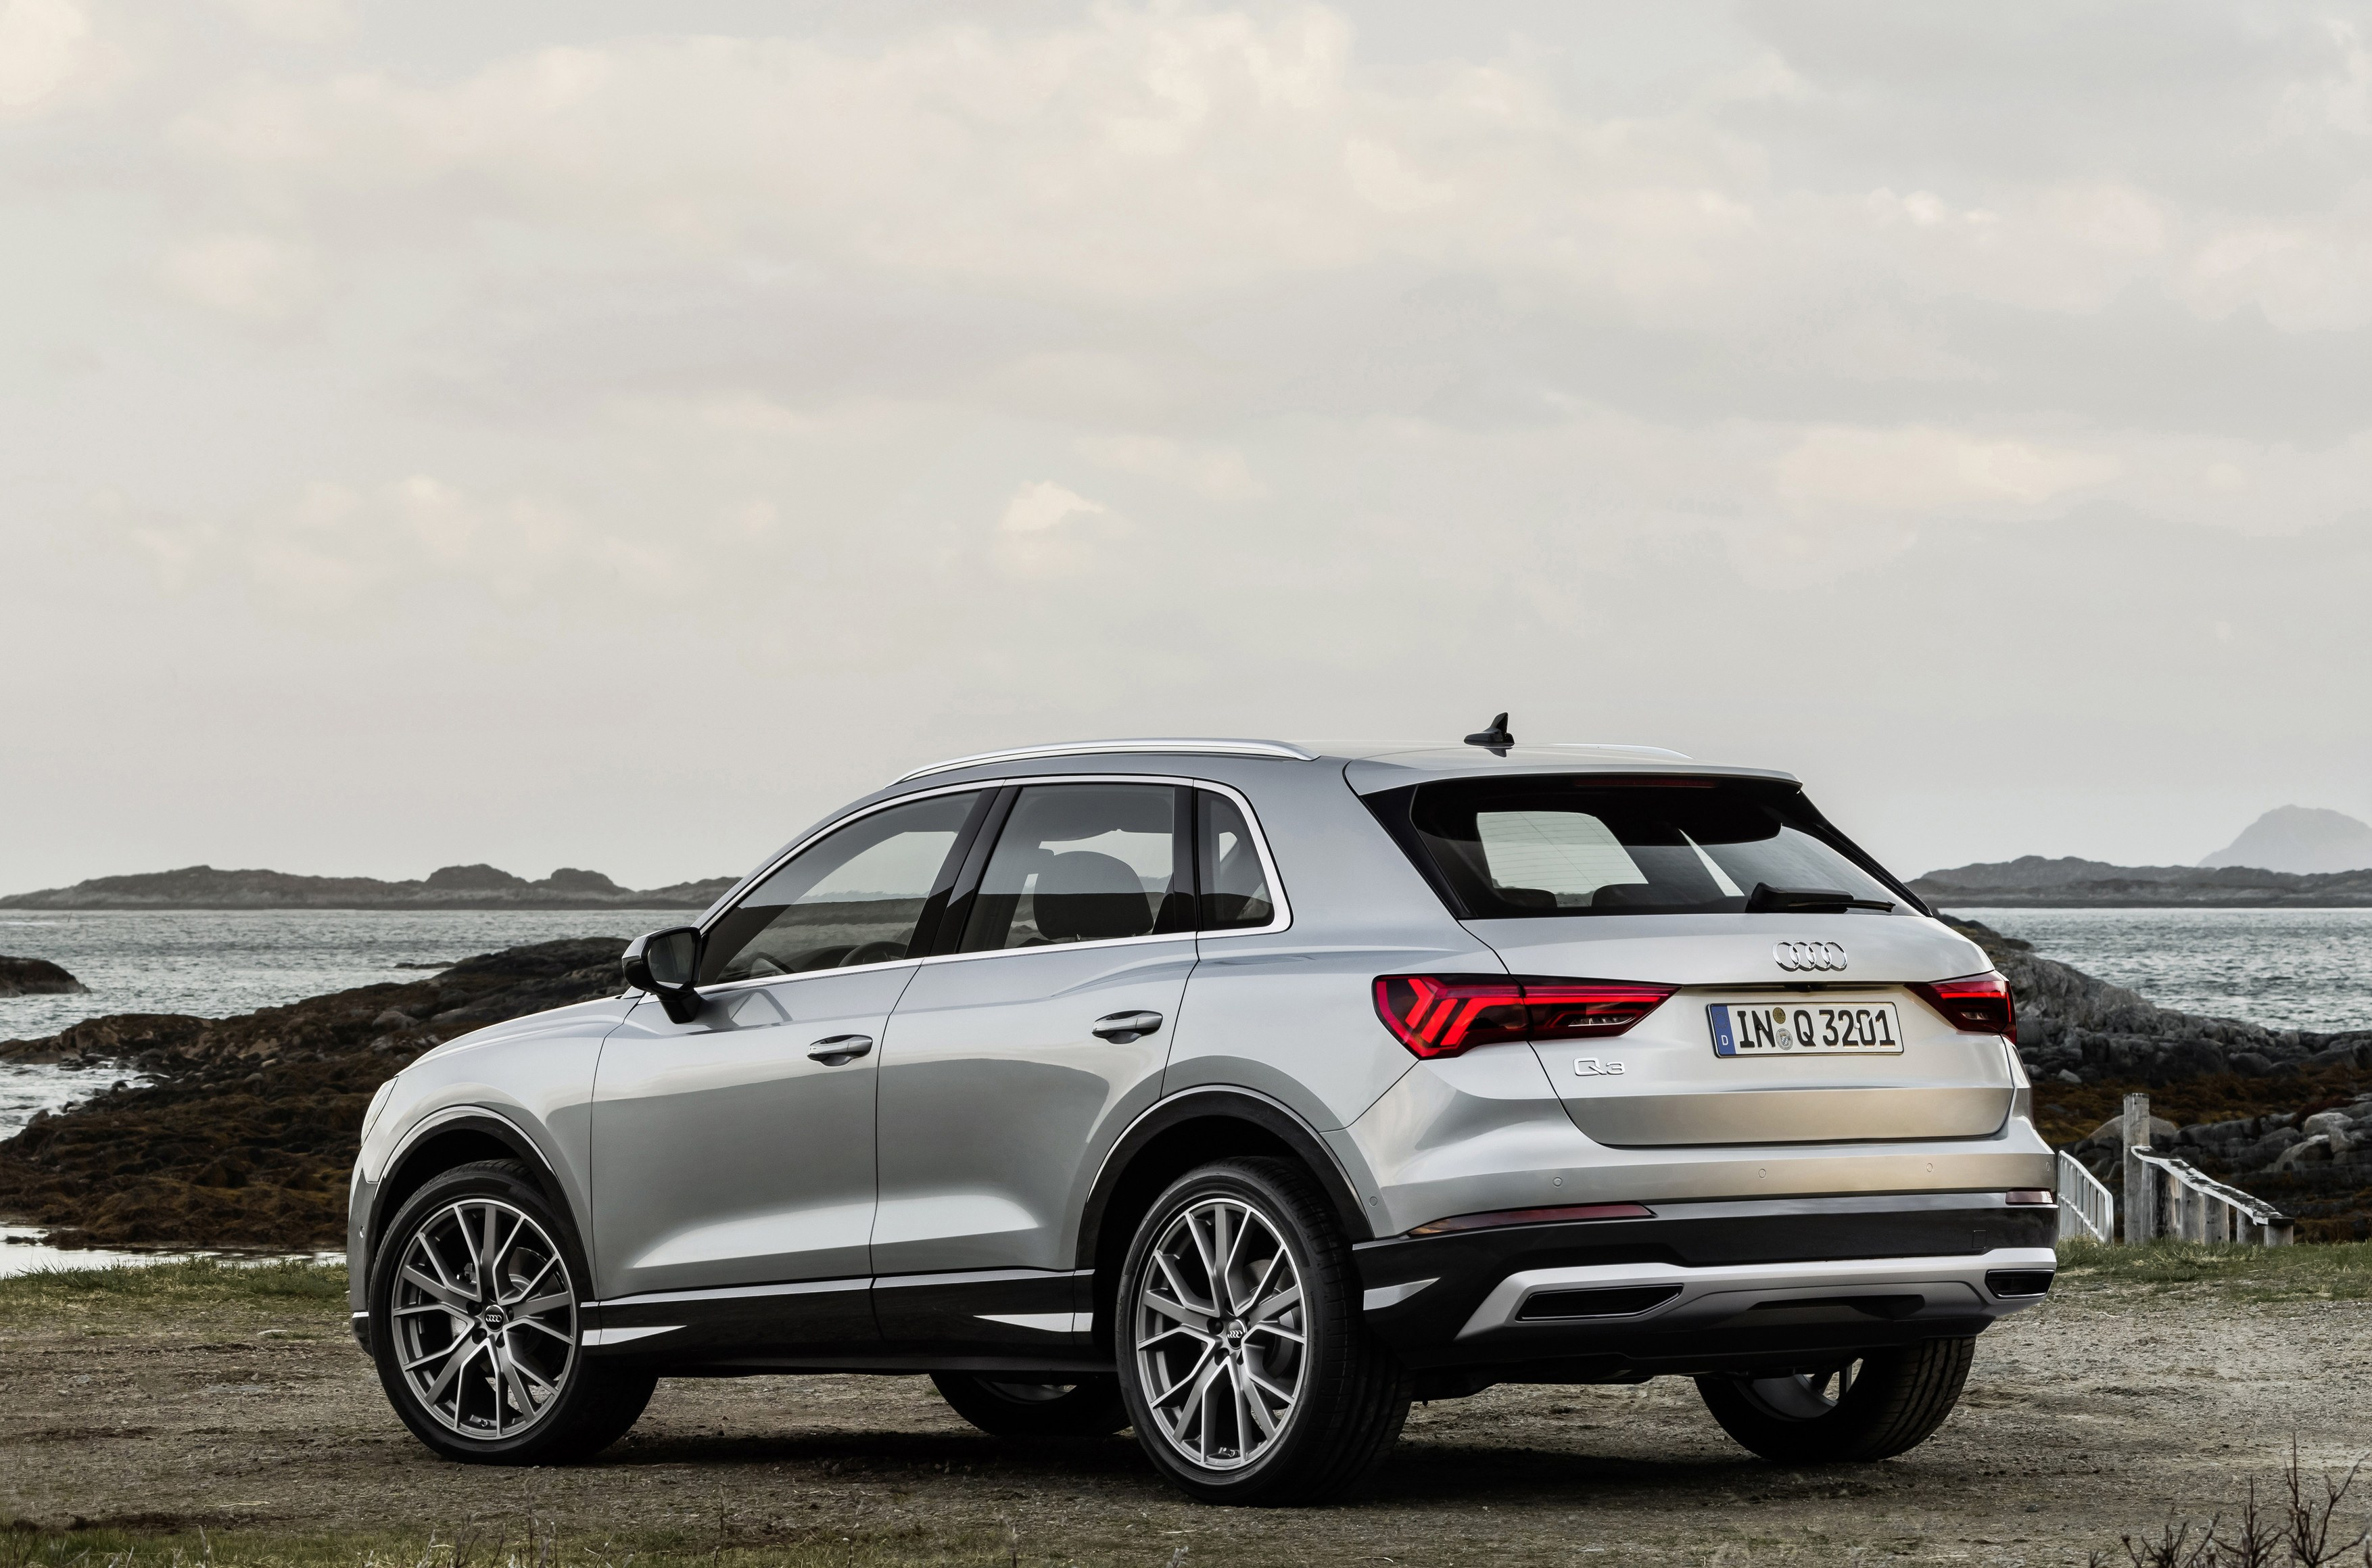 81 The Best 2020 Audi Q3 Usa Model